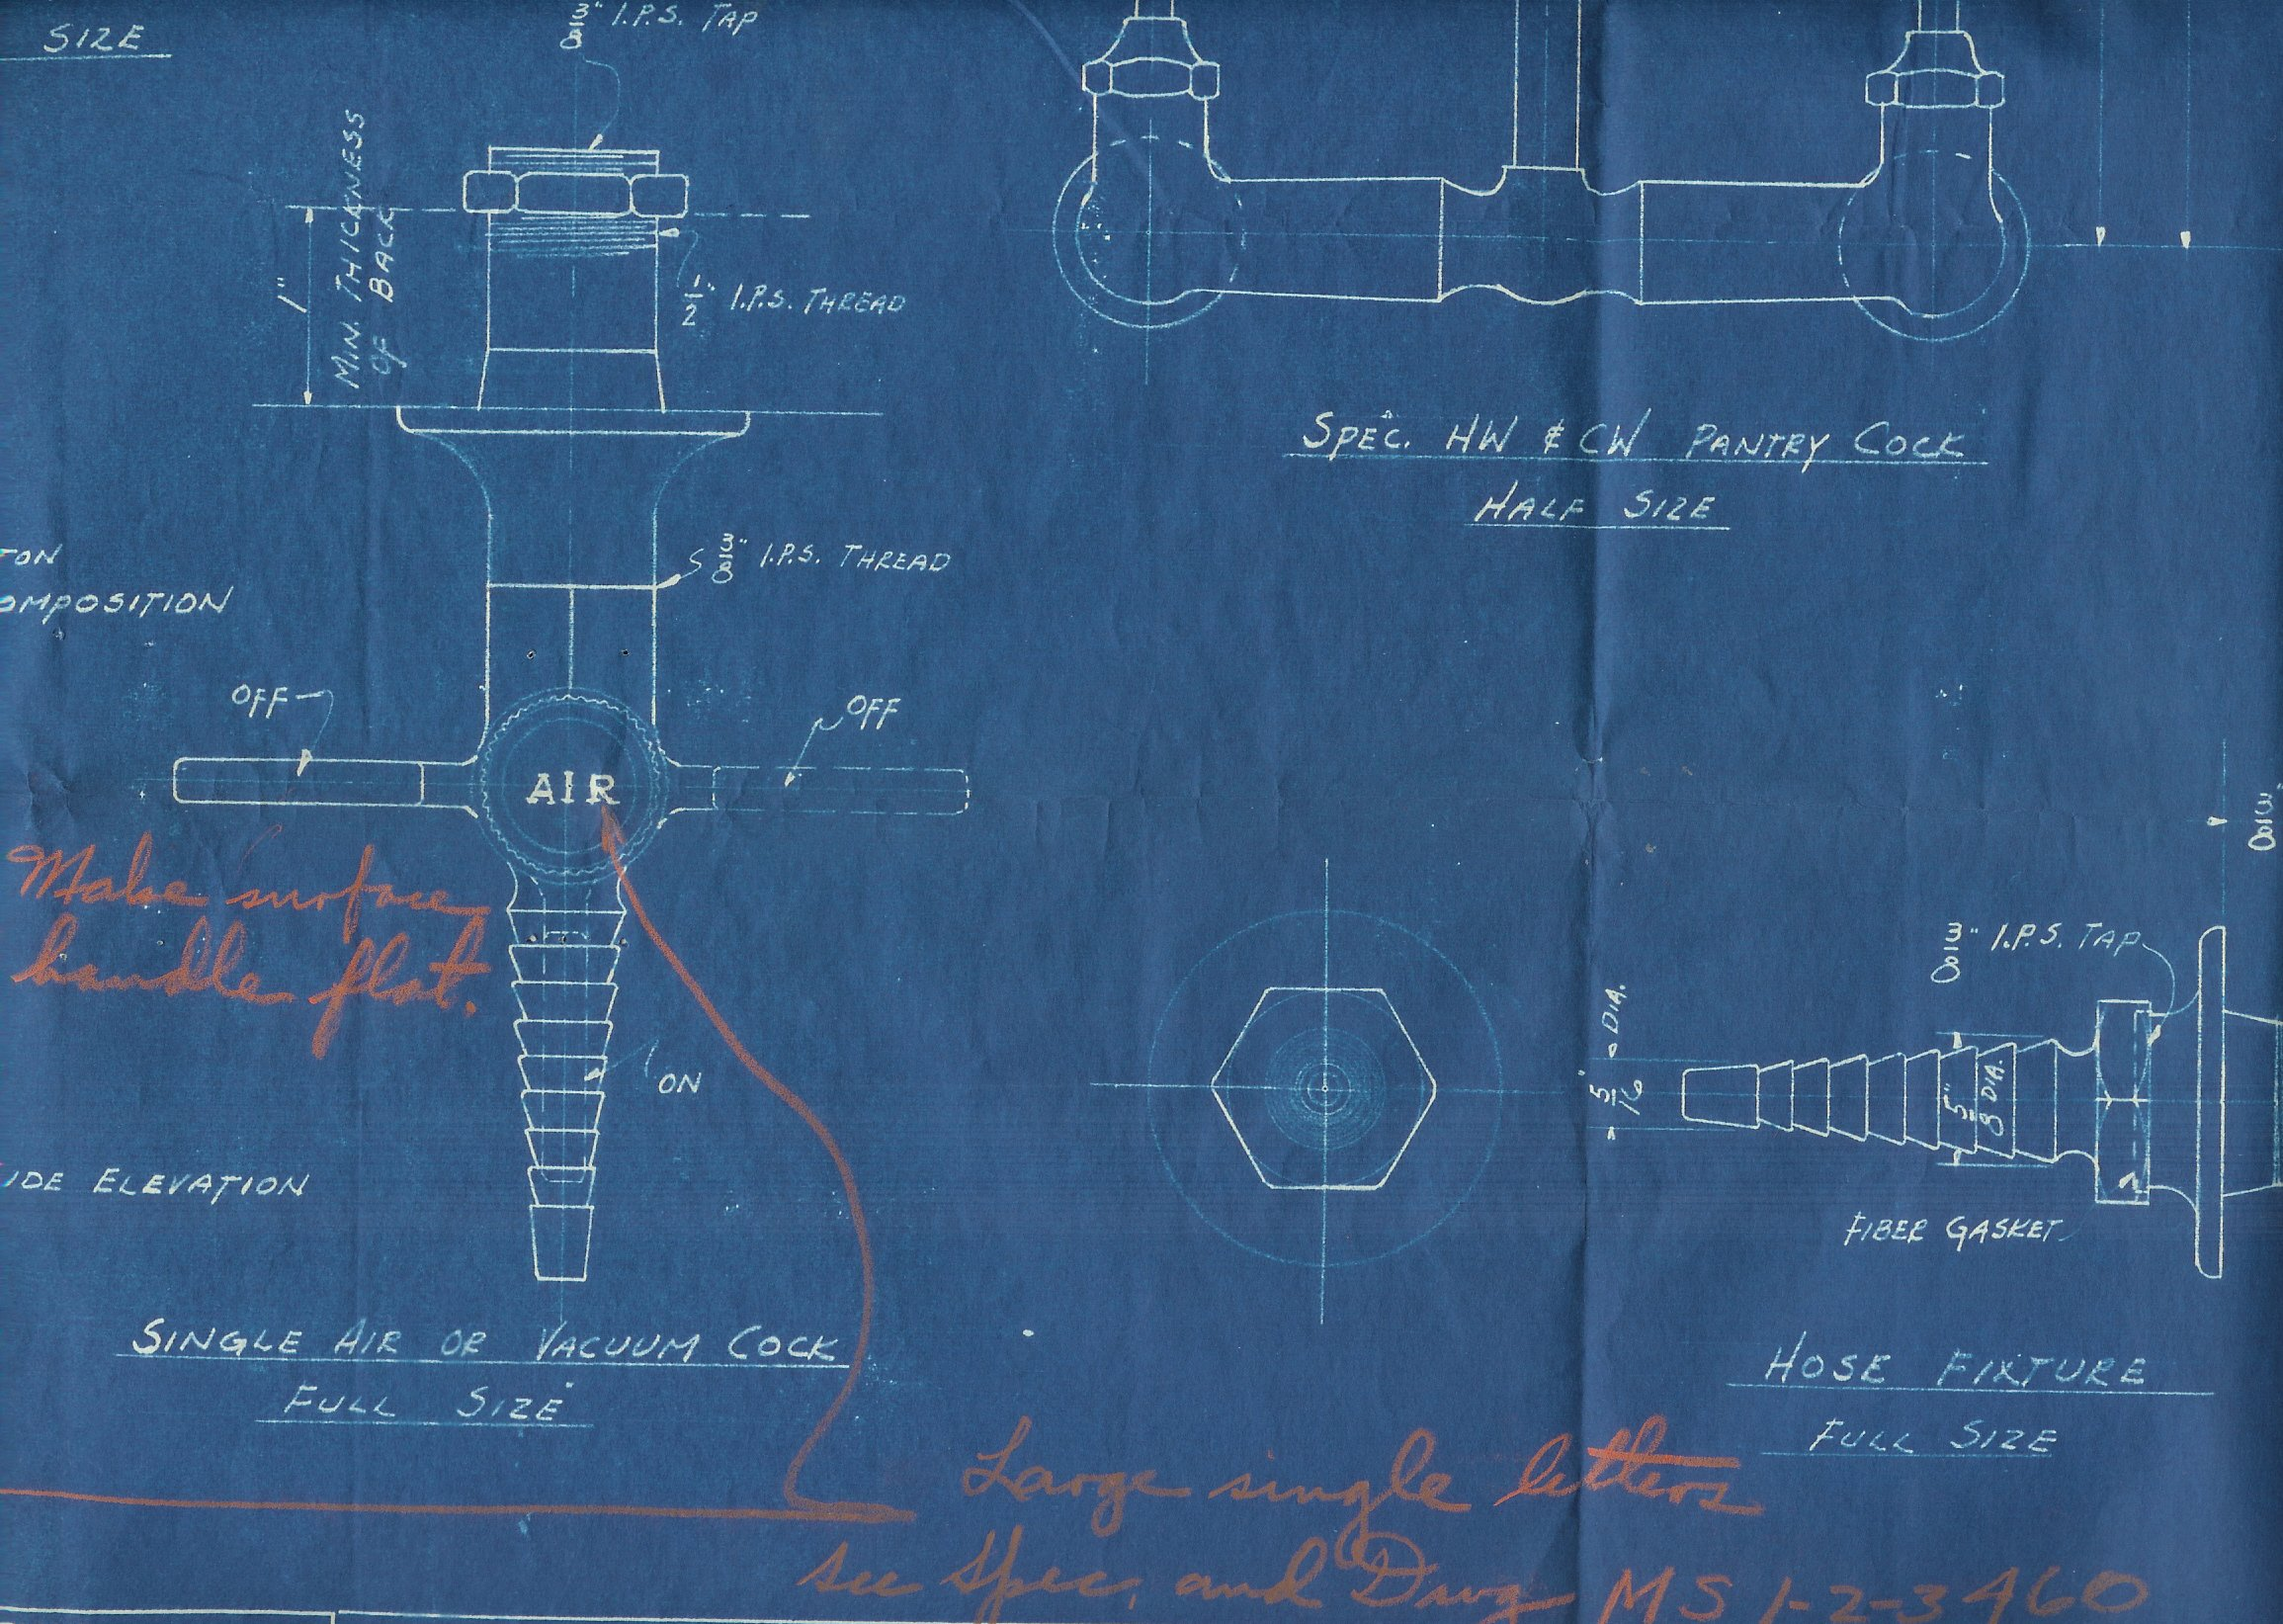 Kewaunee Manufacturing Co. valve designs had no trademarks on them, but due to an error in manufacturing, they were on the finished valves.  Discrepancies between design and product were not allowed, an error that cost KMC $111.80.